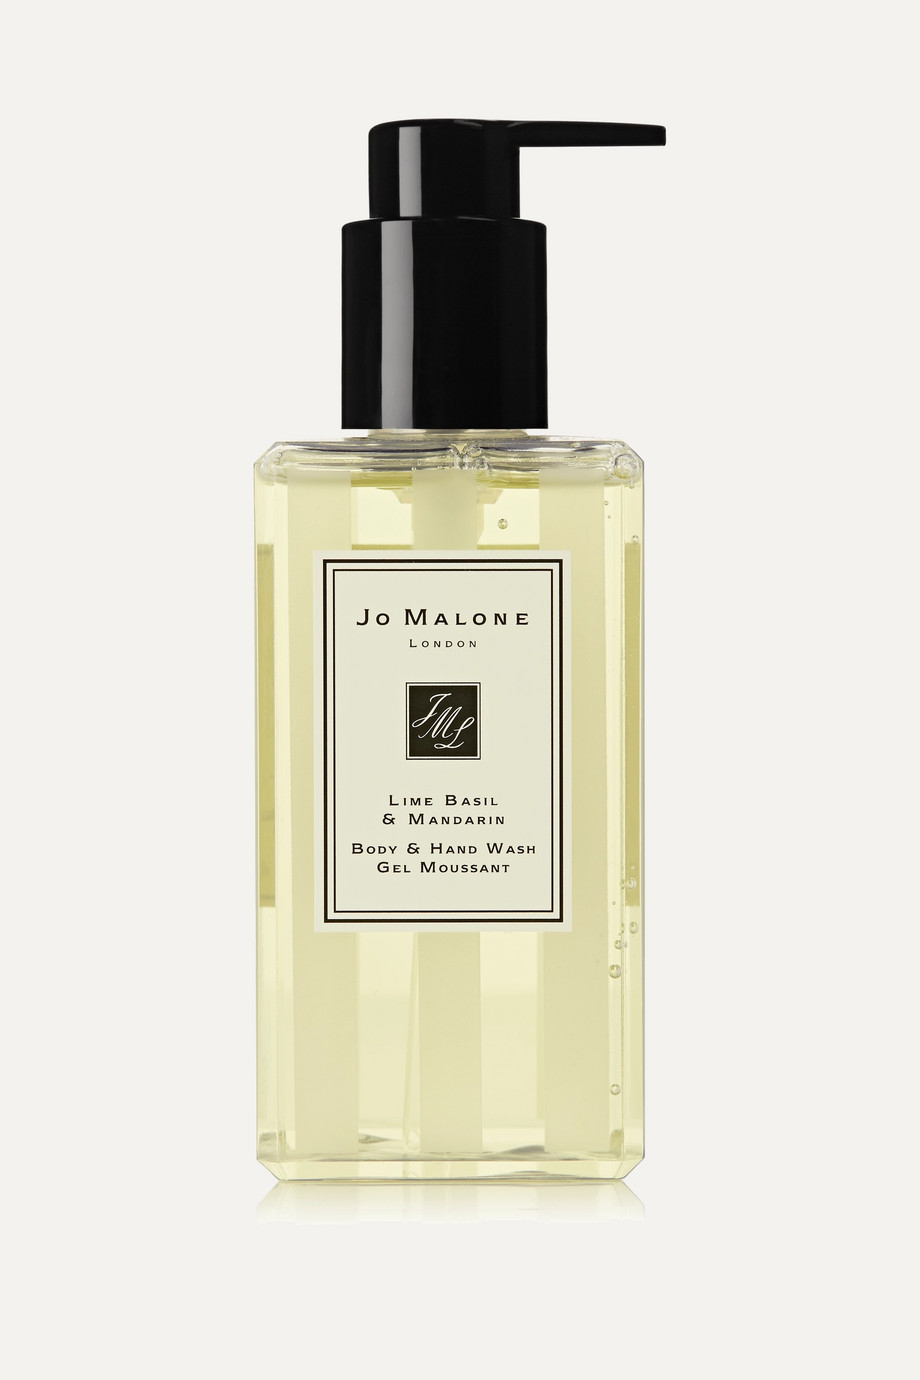 Jo Malone London Lime Basil & Mandarin Body & Hand Wash, 250ml